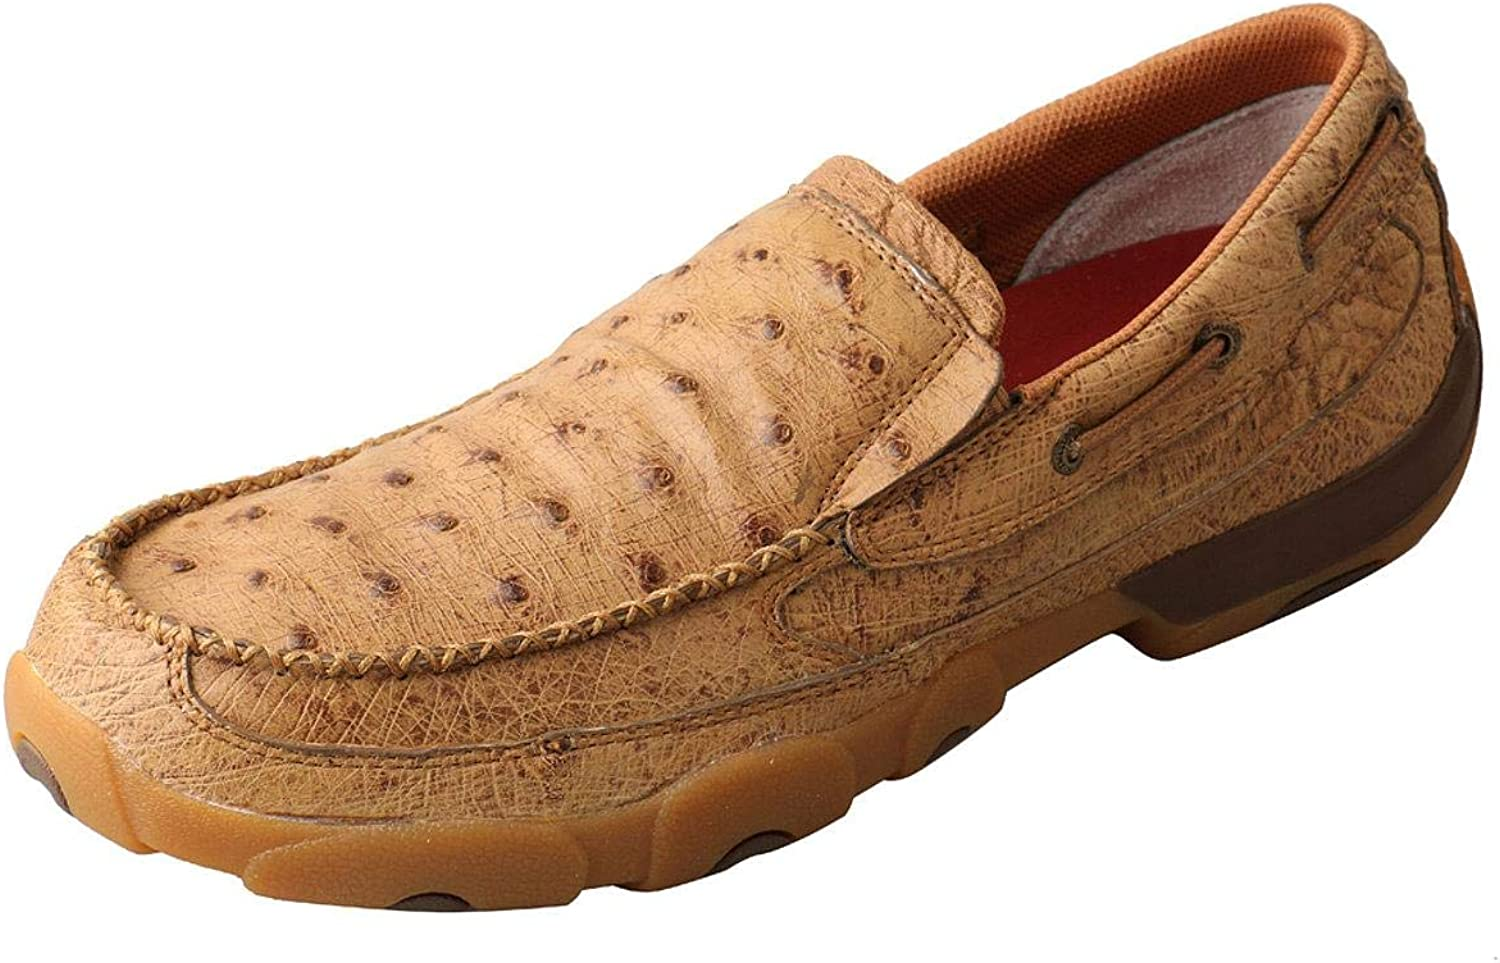 OFFicial store Twisted X Men's Ostrich Print Bargain Driving Moc Shoes Toe